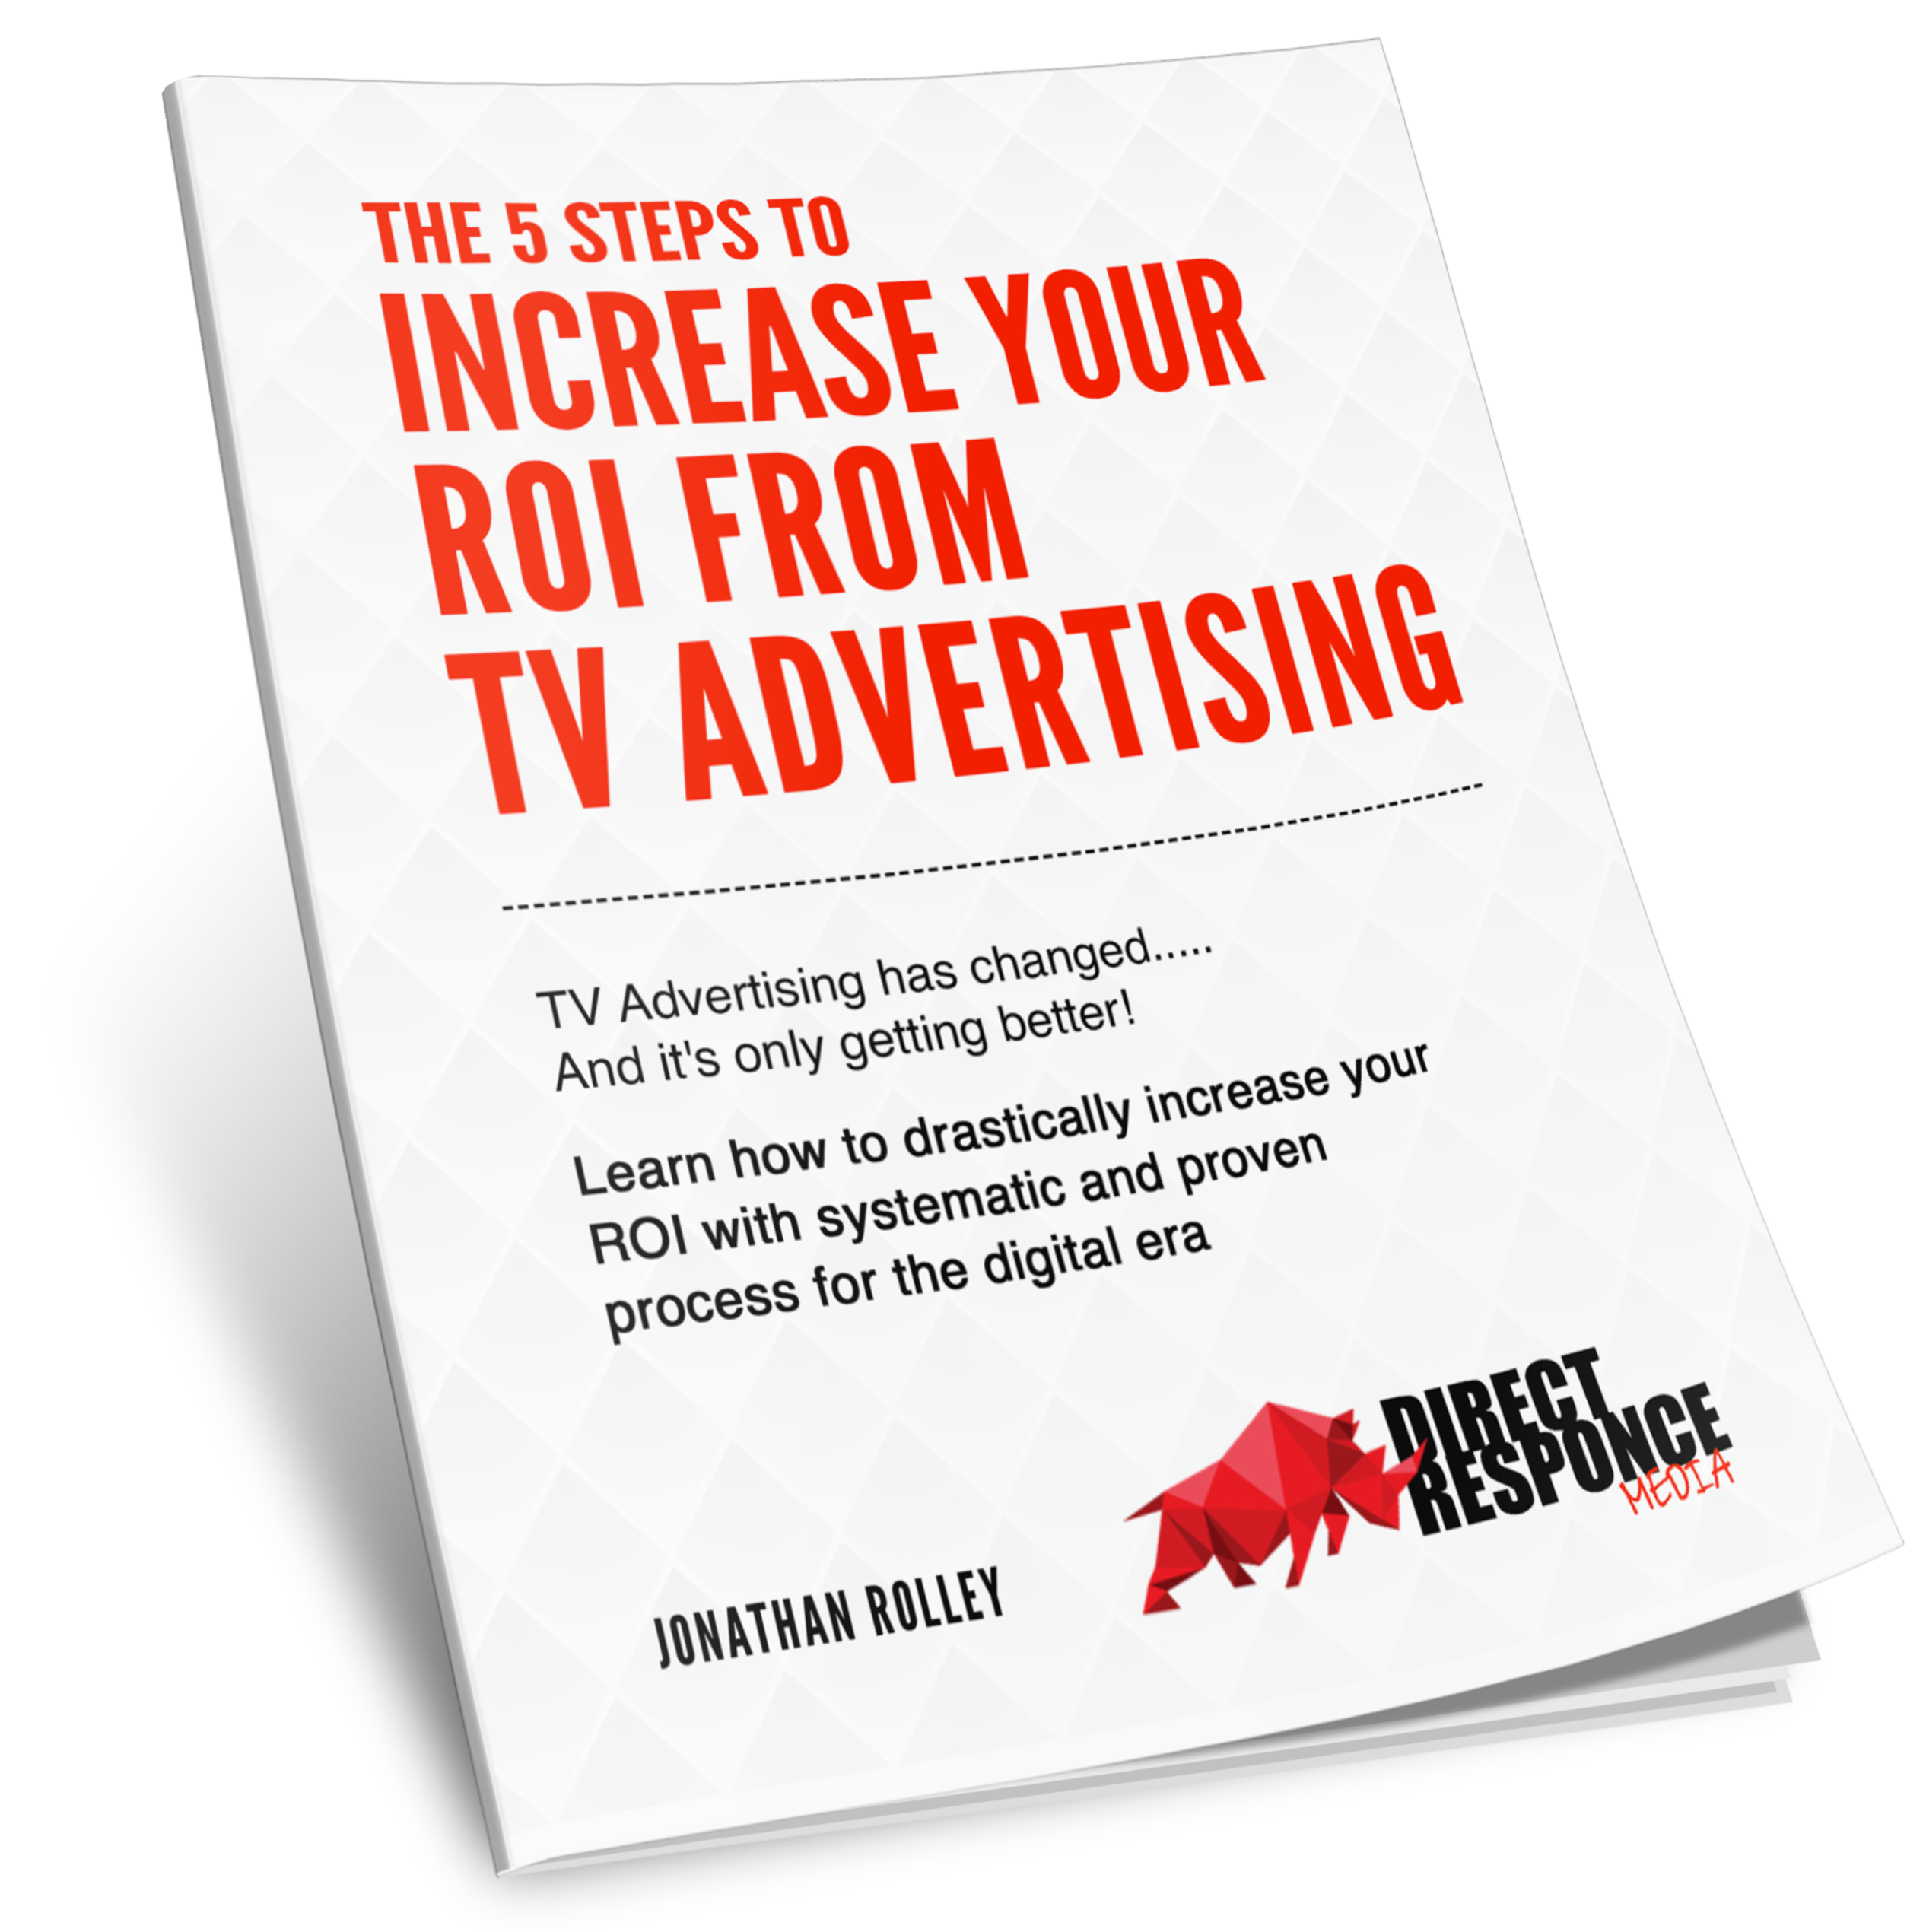 The 5 steps to ROI from your TV Advertising